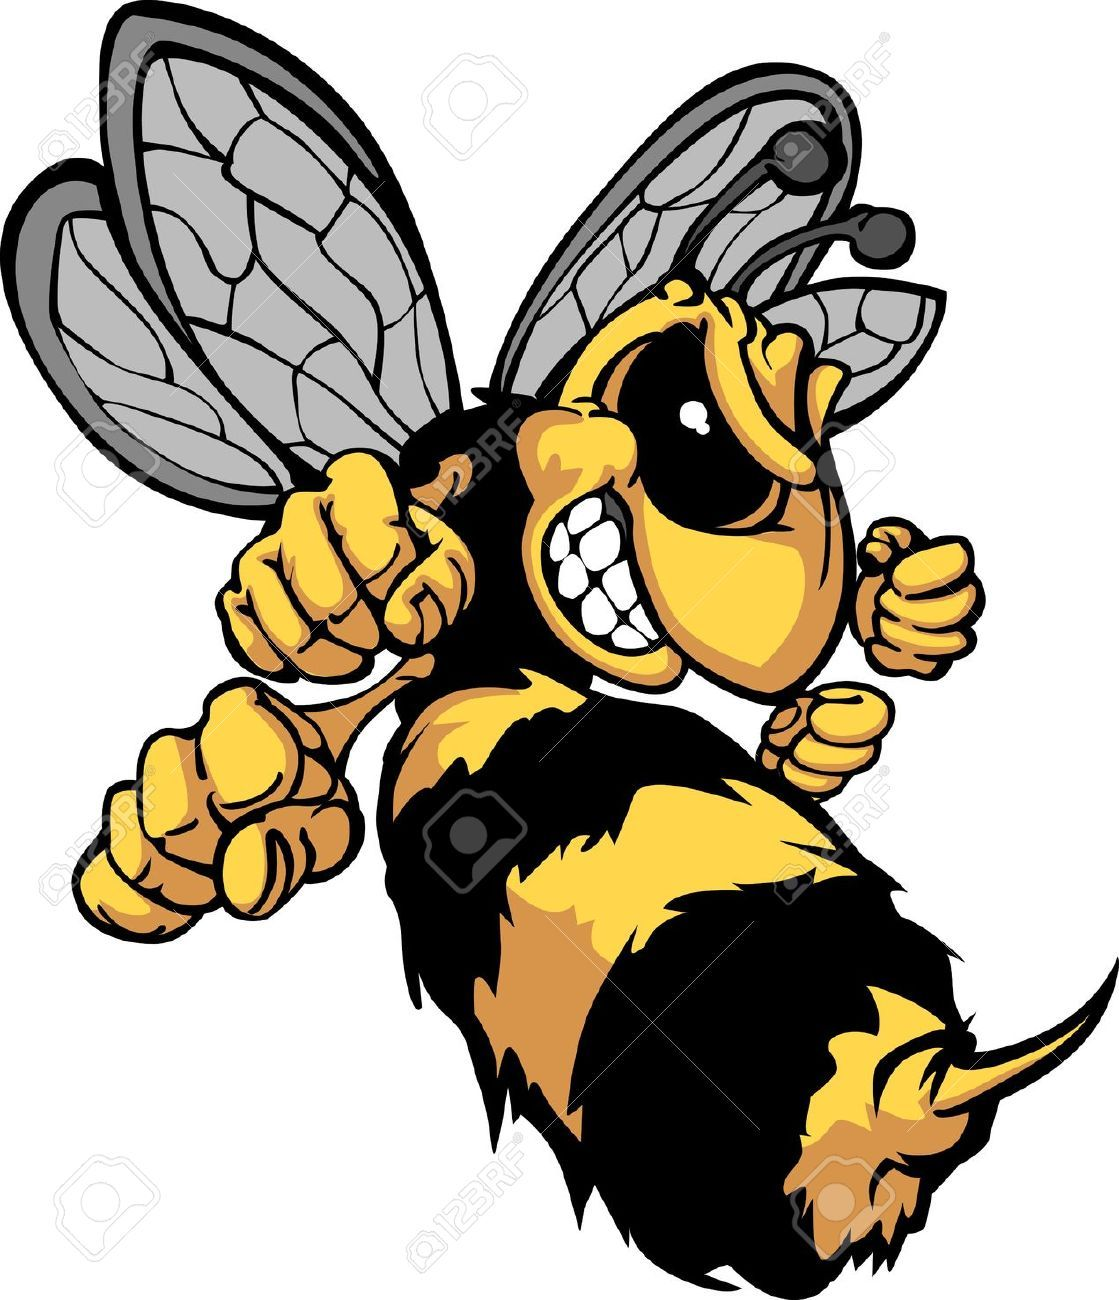 1119x1300 Images Bees Clipart Images Bee's And Dragon Flies